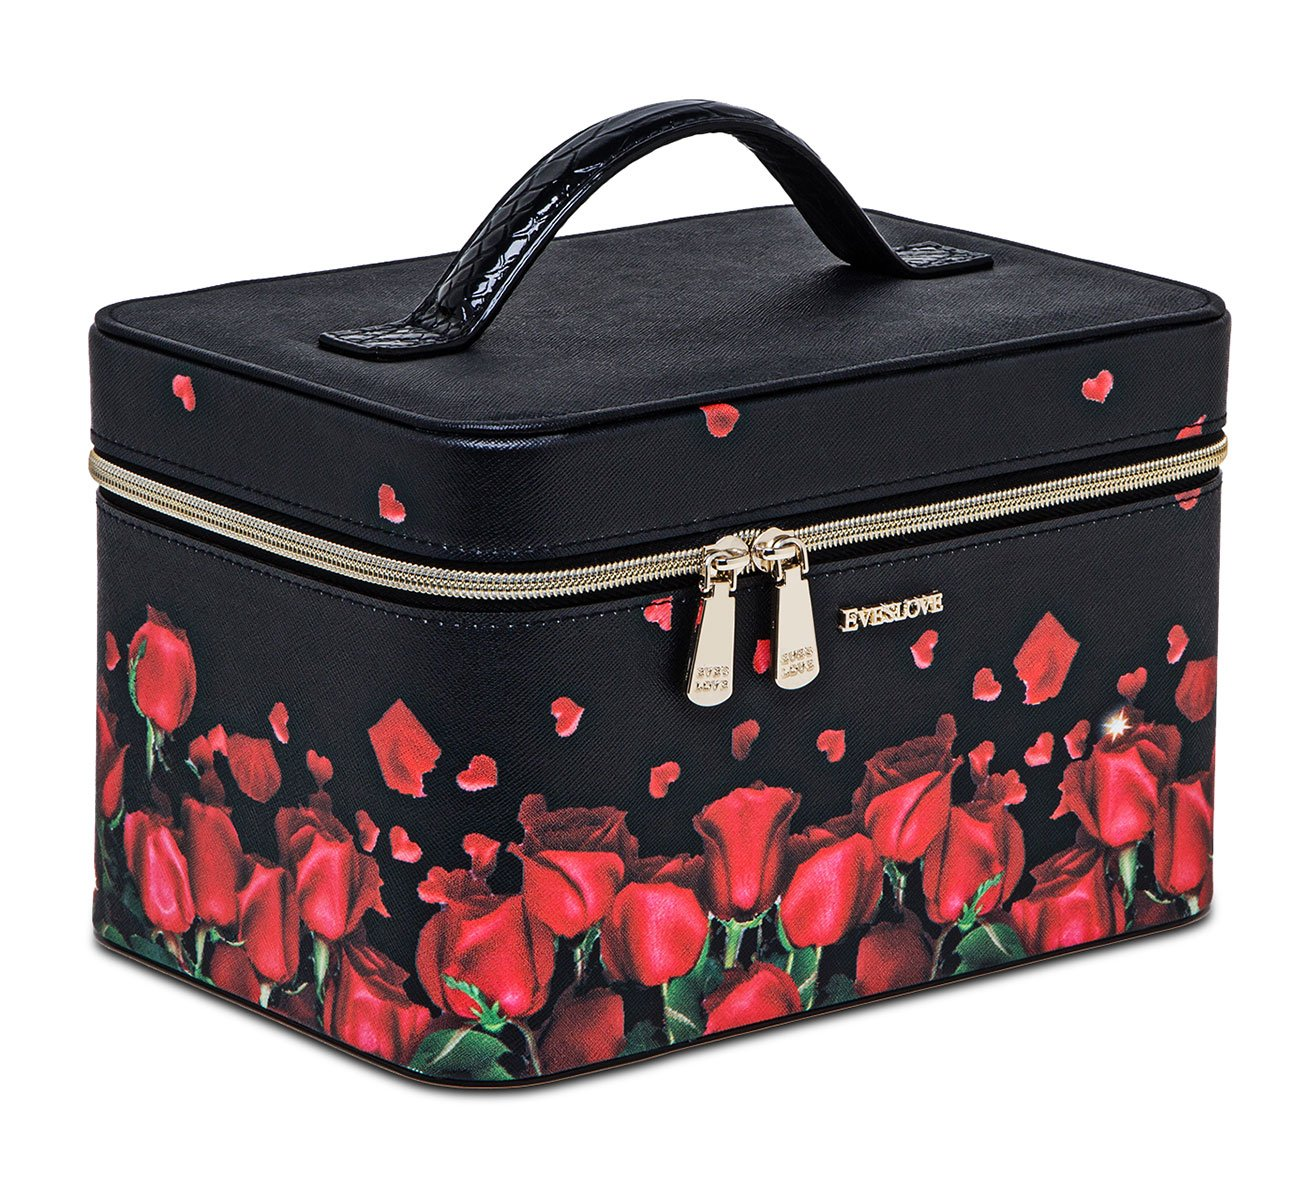 Makeup Bags Organizer Travel Beauty and Personal Care Women's Fashion Accessories Organizer Cosmetic Makeup Box for Women